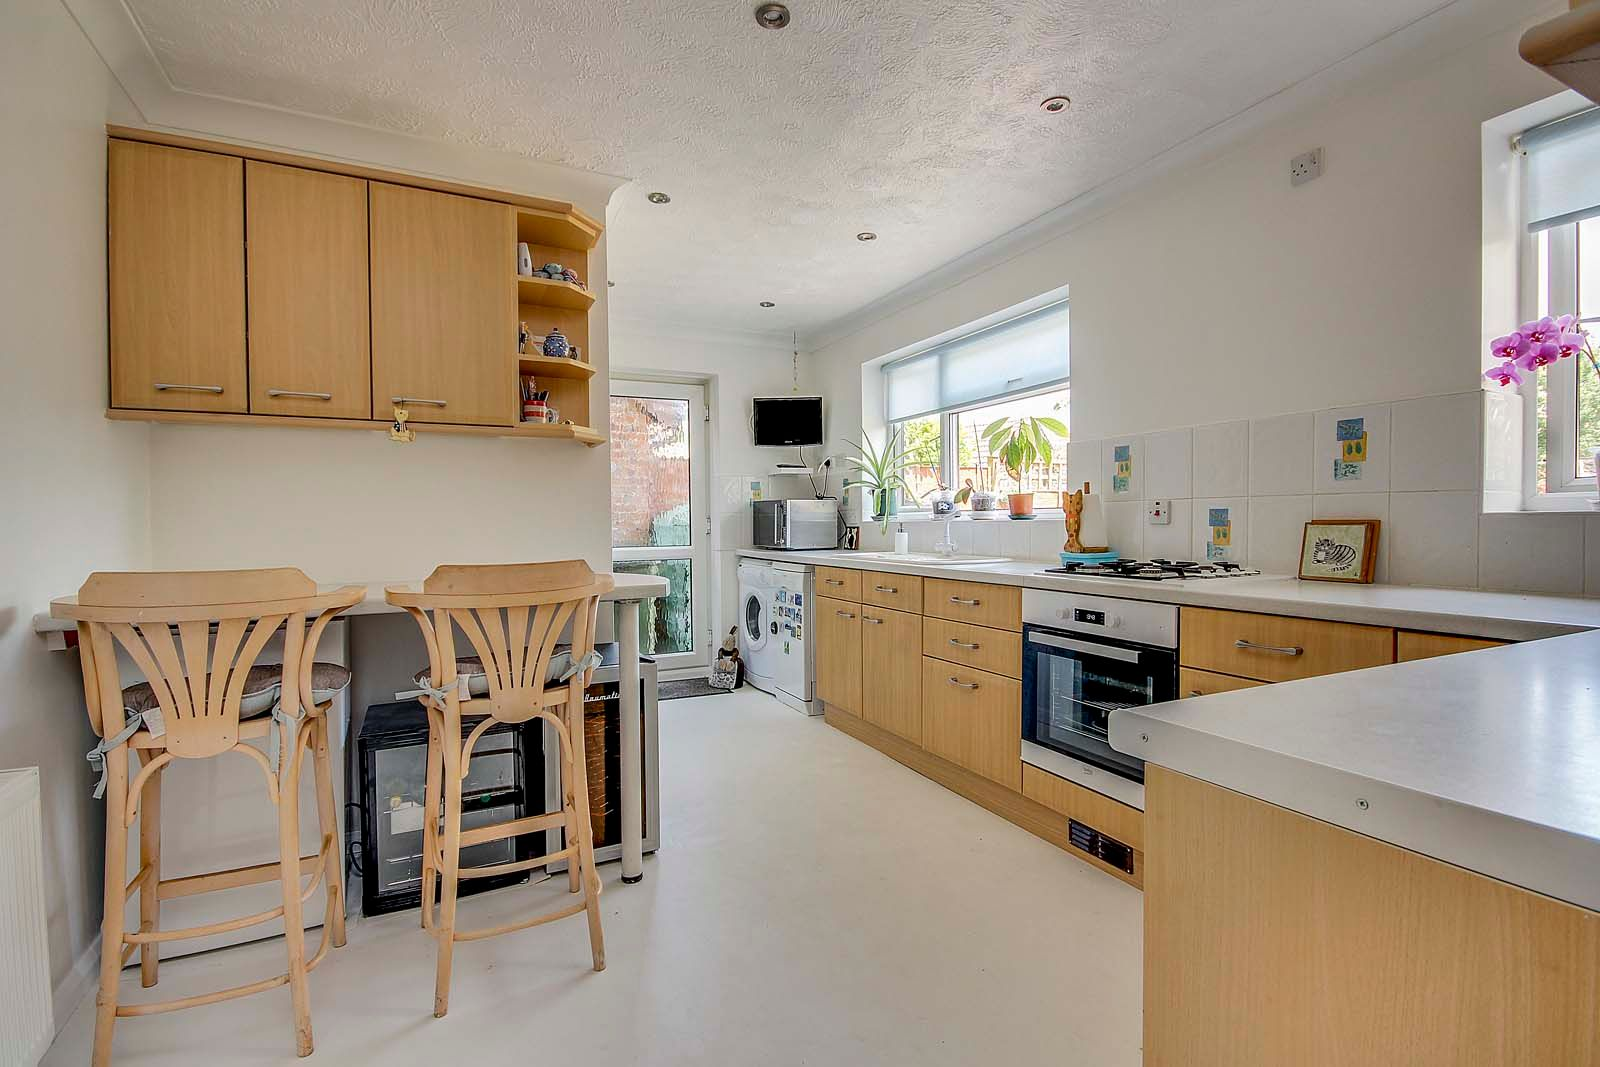 4 bed house for sale in Longships 5